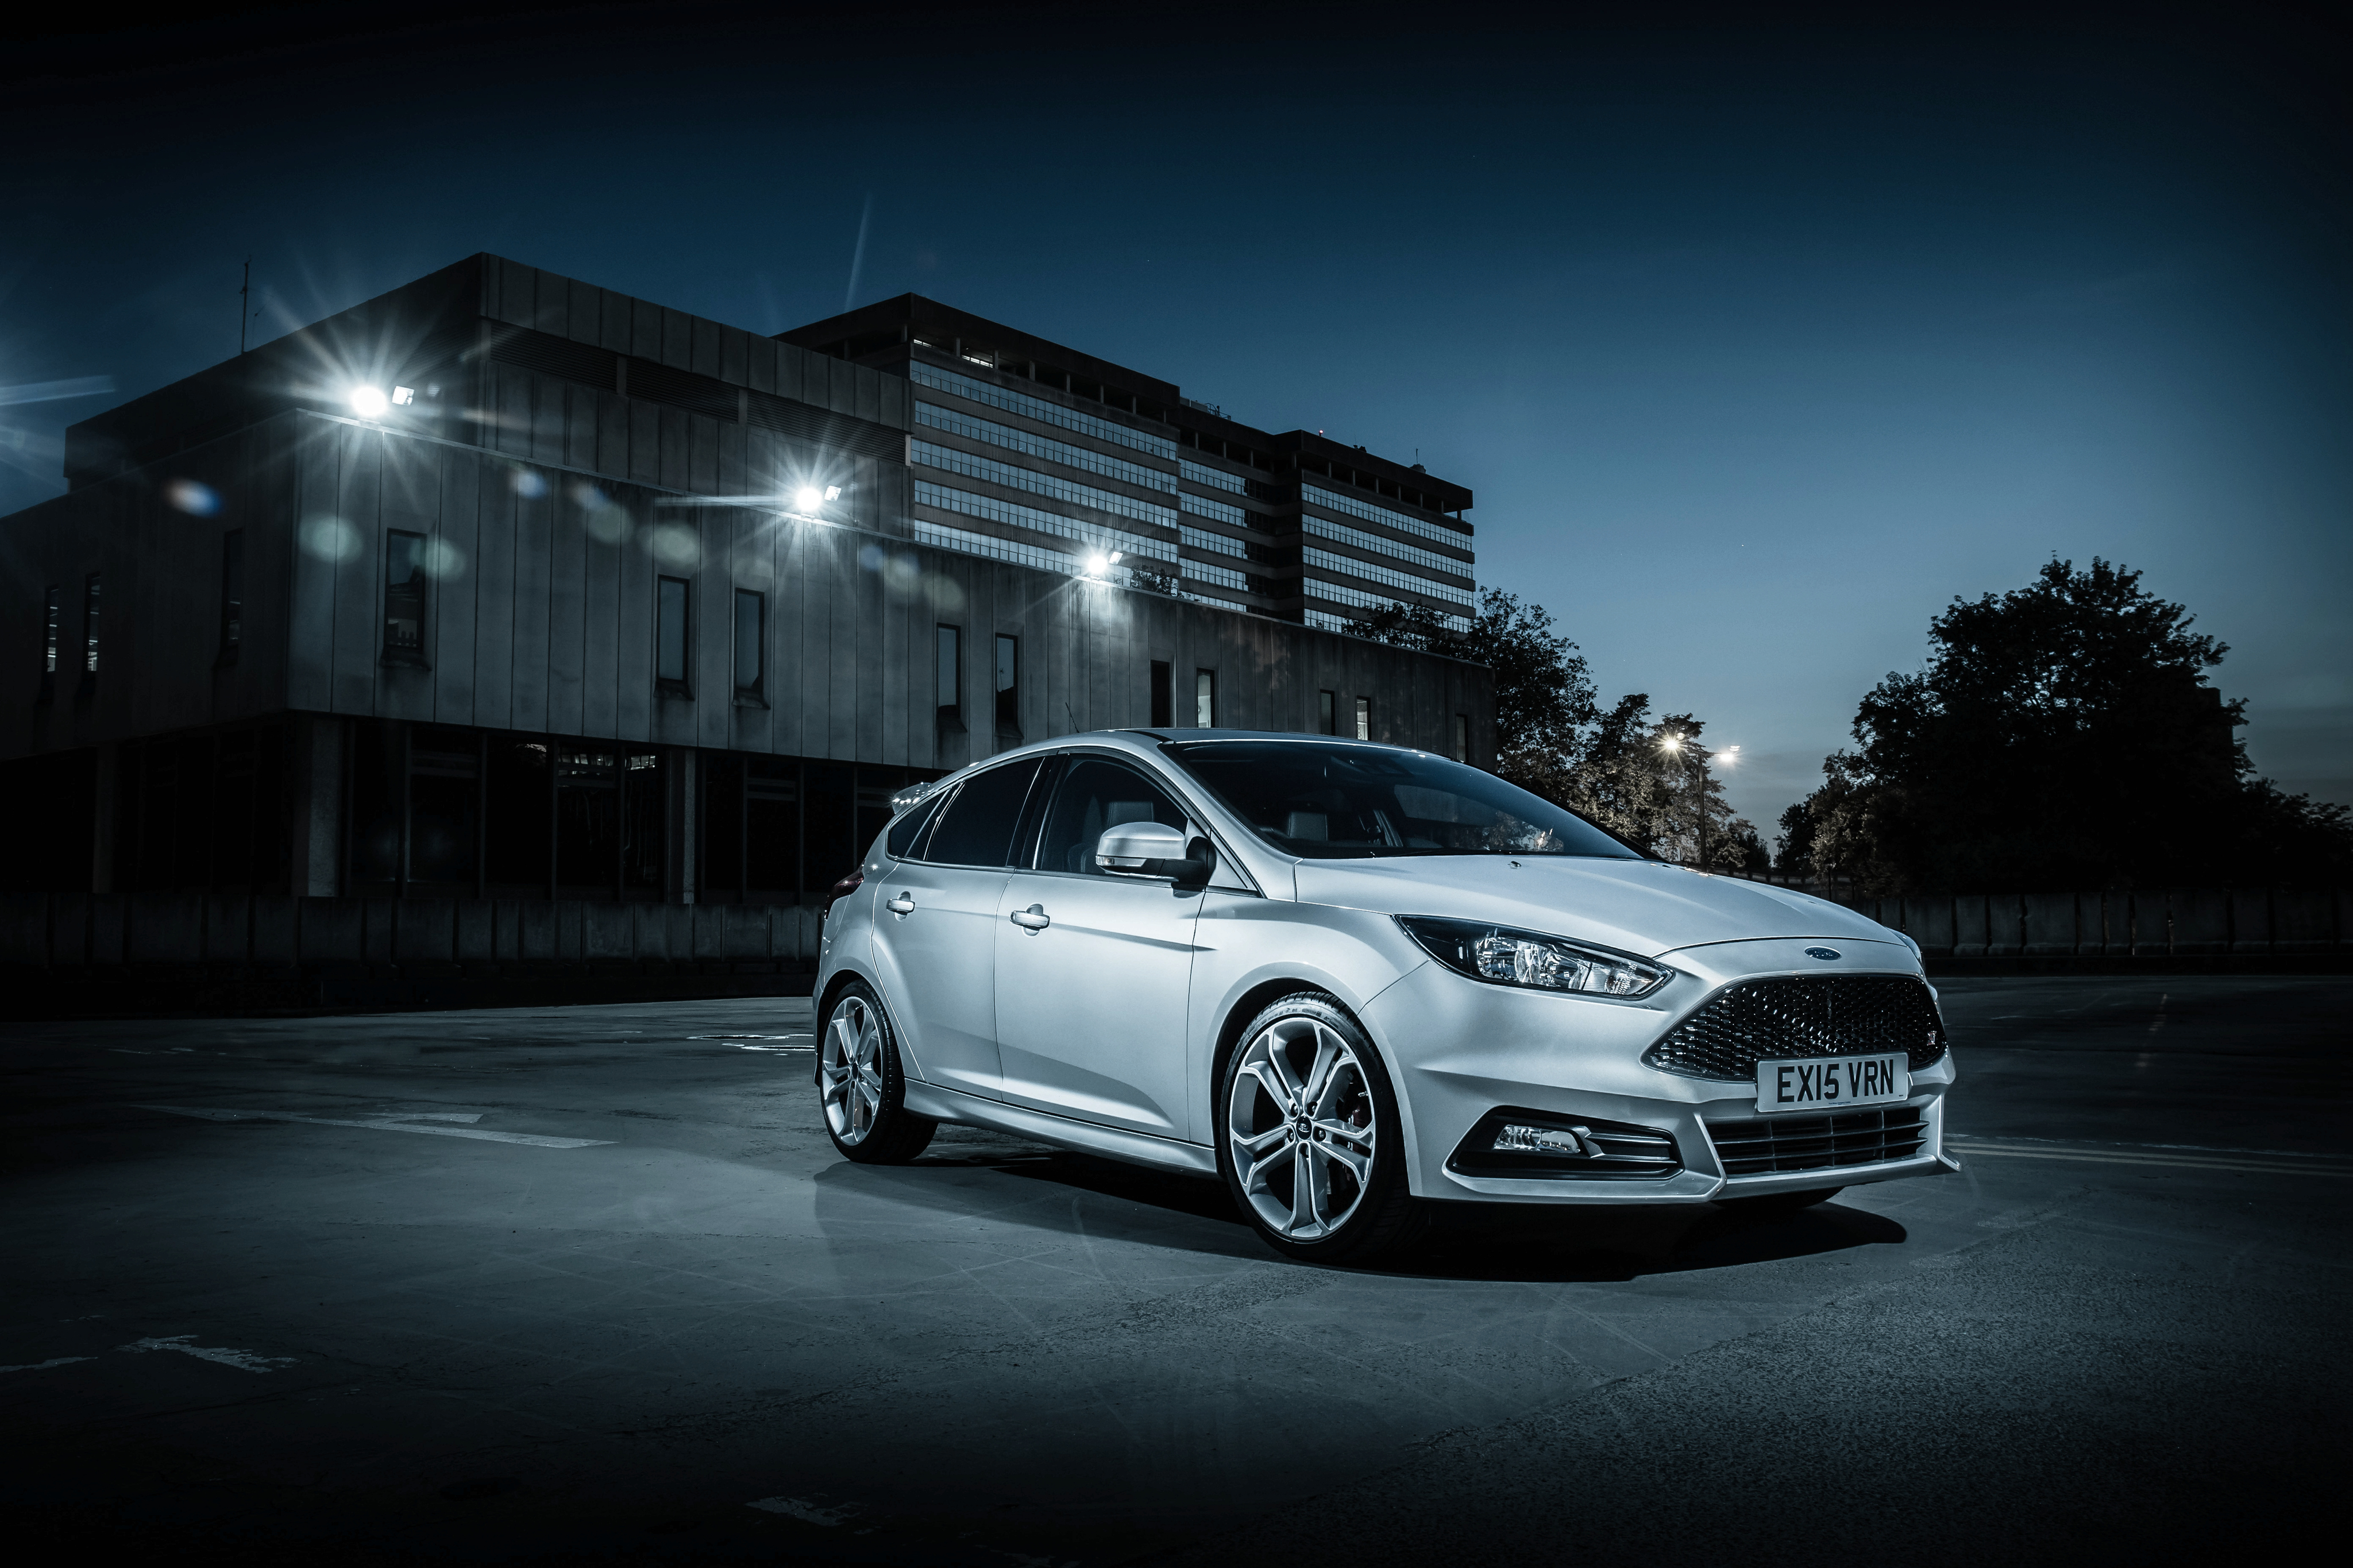 Ford Focus 4k Ultra Hd Wallpaper Background Image 4096x2730 Id